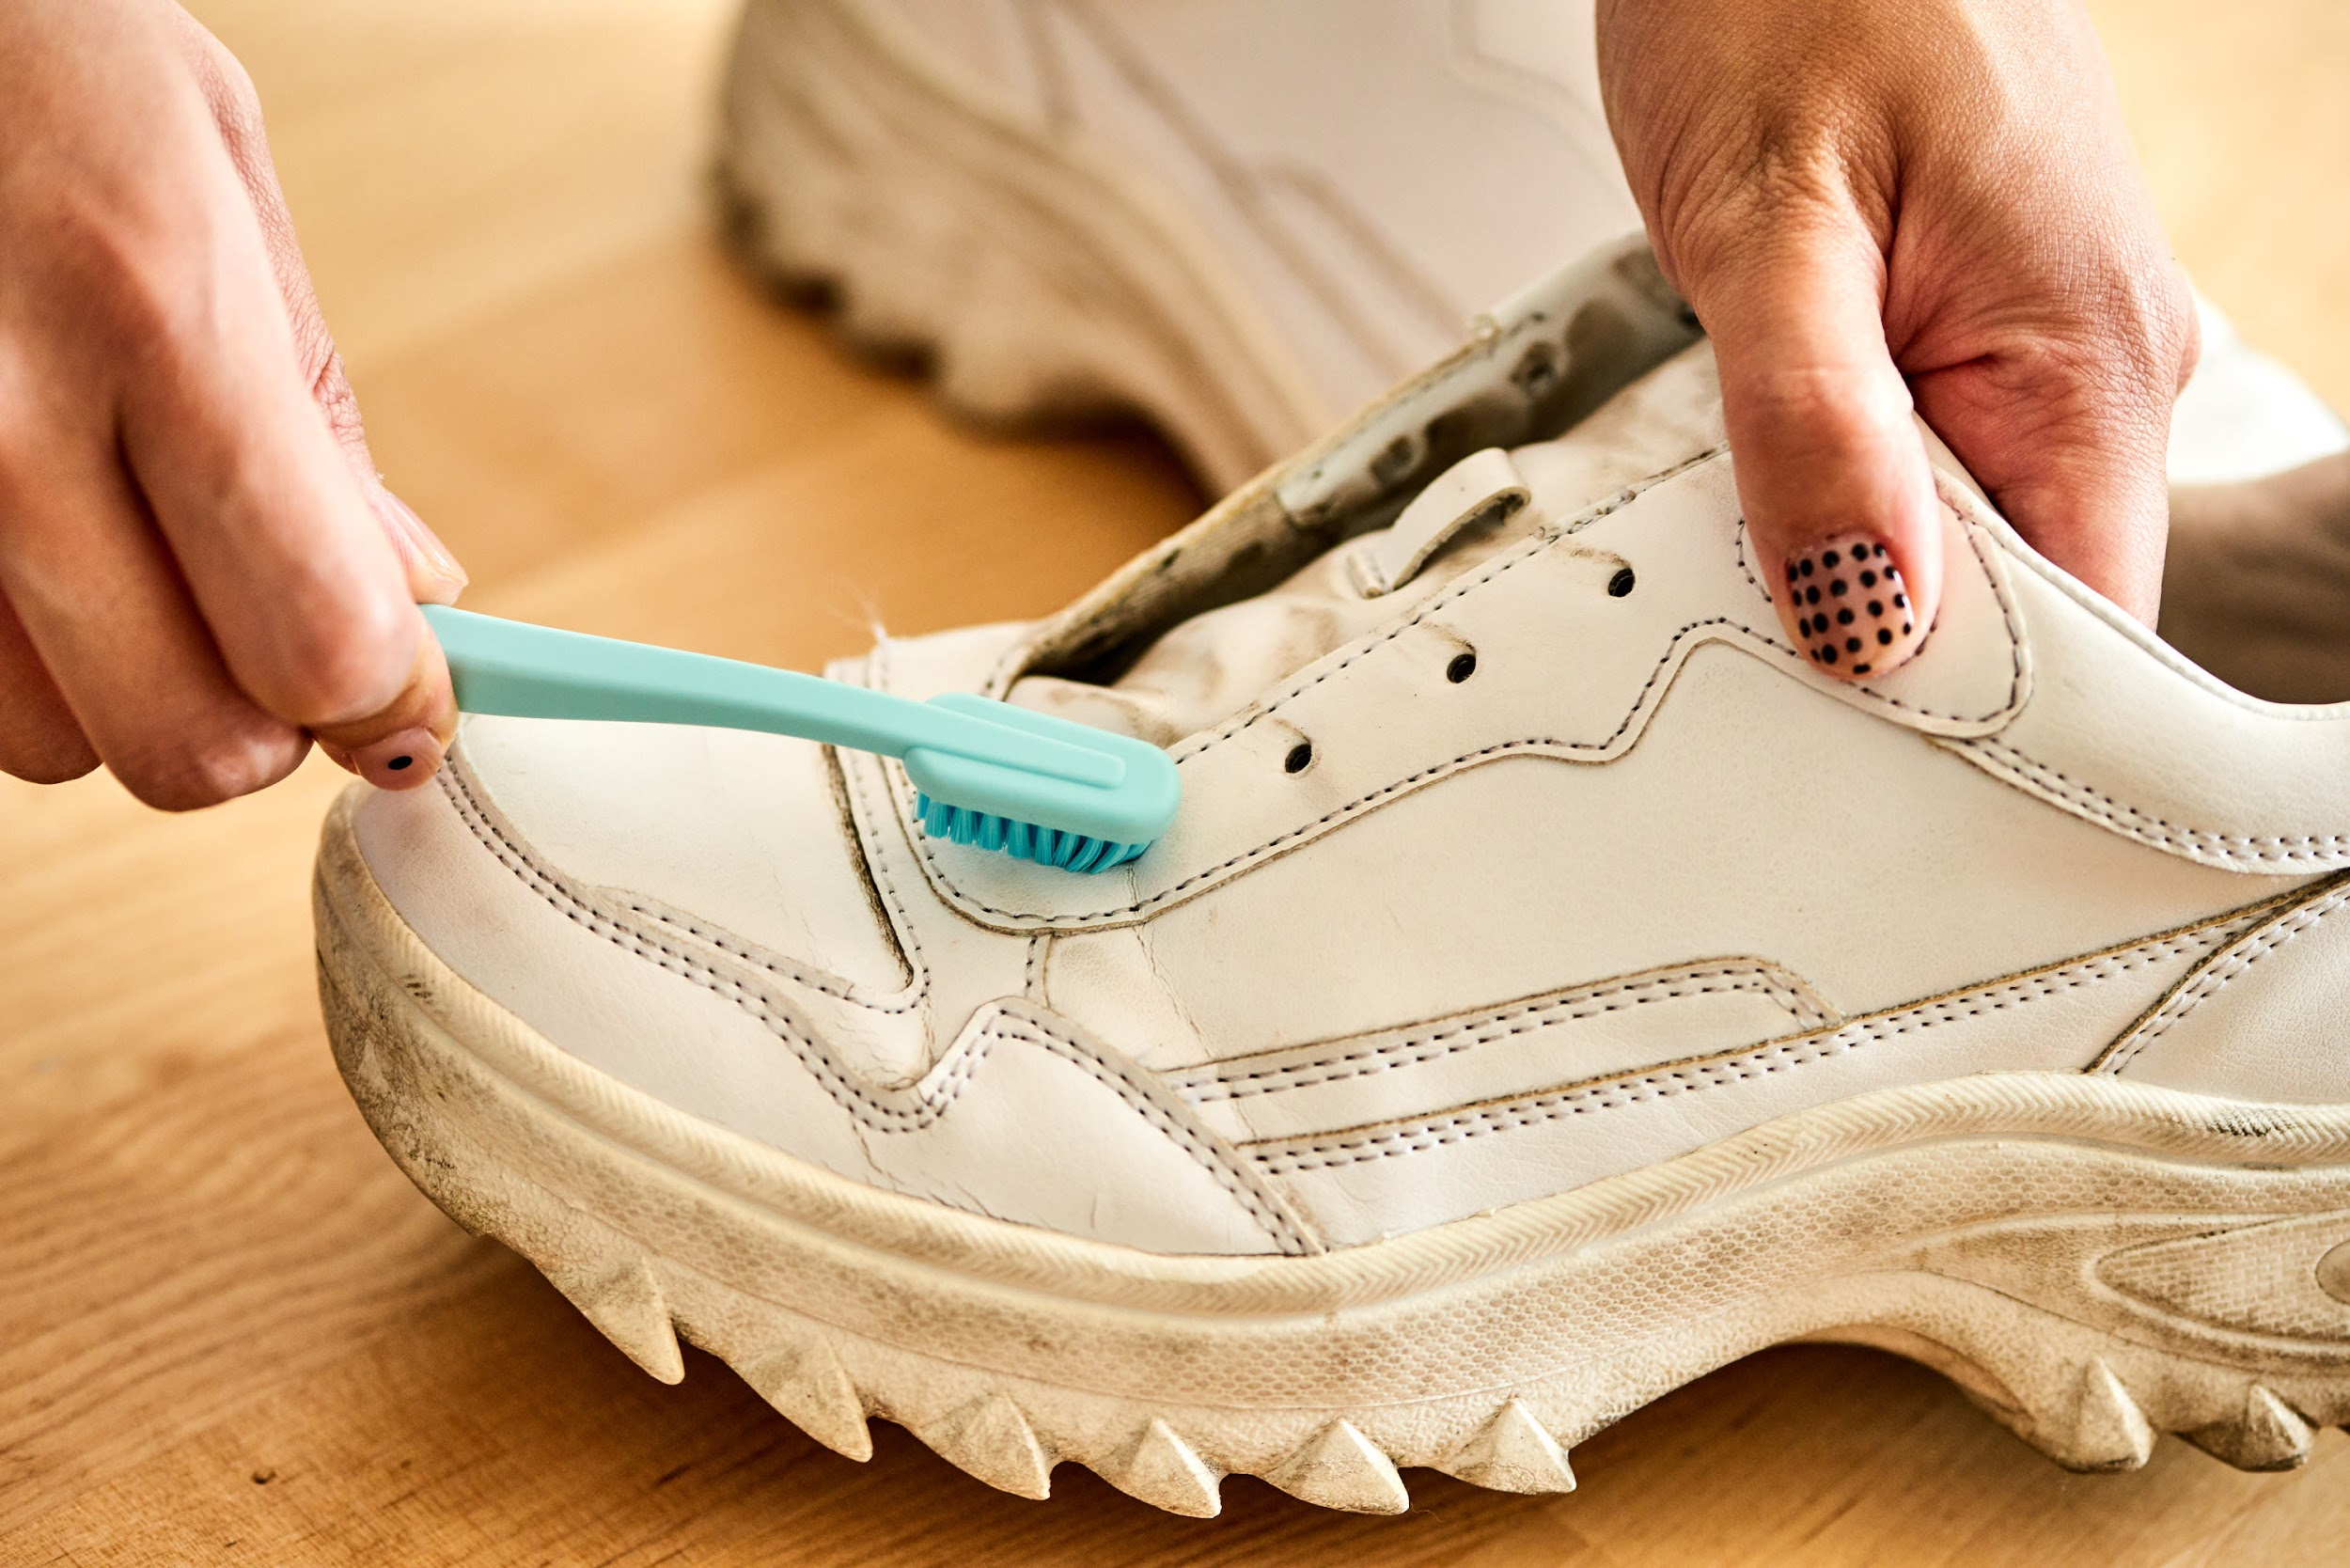 Detailed instructions on how to clean used shoes